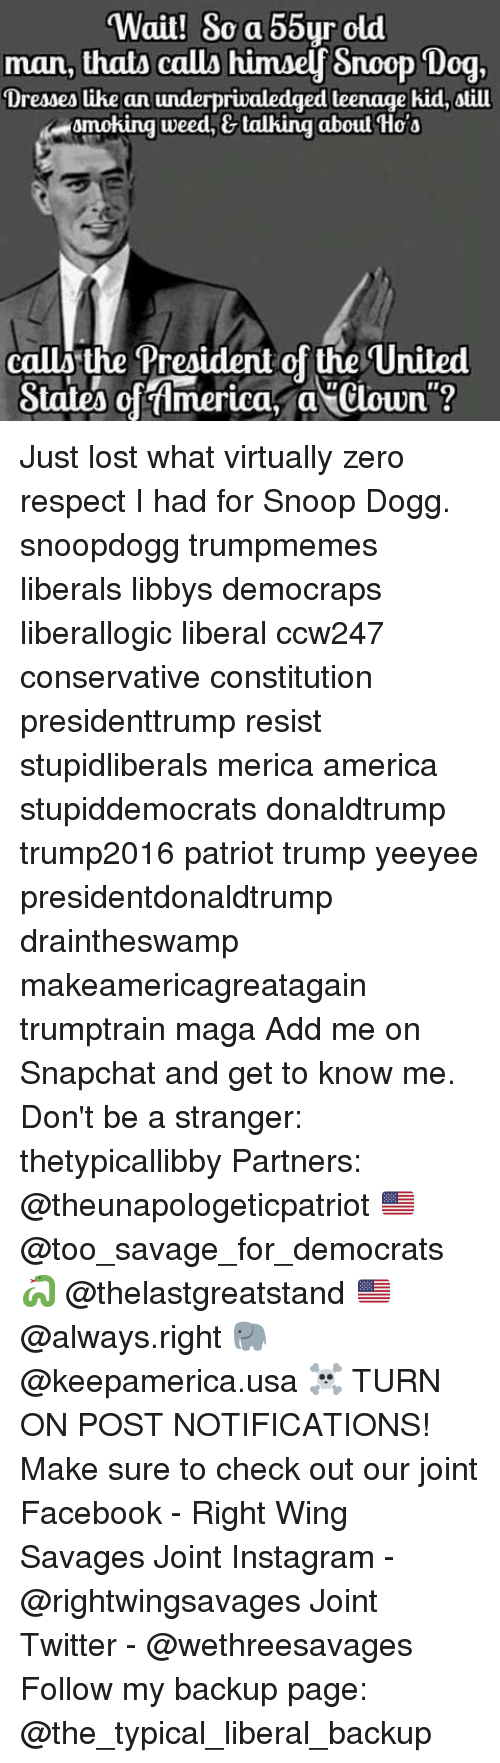 Conservative, Usa, and Weeds: Wait! So a 55yr old  man, thatA callA himaey Snoop Dog,  Dreaaeslike an underpriu  teenage hid, atill  Omoking weed, talking aboul Hoa  call the President of the United  States ofAmerica, a Clown Just lost what virtually zero respect I had for Snoop Dogg. snoopdogg trumpmemes liberals libbys democraps liberallogic liberal ccw247 conservative constitution presidenttrump resist stupidliberals merica america stupiddemocrats donaldtrump trump2016 patriot trump yeeyee presidentdonaldtrump draintheswamp makeamericagreatagain trumptrain maga Add me on Snapchat and get to know me. Don't be a stranger: thetypicallibby Partners: @theunapologeticpatriot 🇺🇸 @too_savage_for_democrats 🐍 @thelastgreatstand 🇺🇸 @always.right 🐘 @keepamerica.usa ☠️ TURN ON POST NOTIFICATIONS! Make sure to check out our joint Facebook - Right Wing Savages Joint Instagram - @rightwingsavages Joint Twitter - @wethreesavages Follow my backup page: @the_typical_liberal_backup